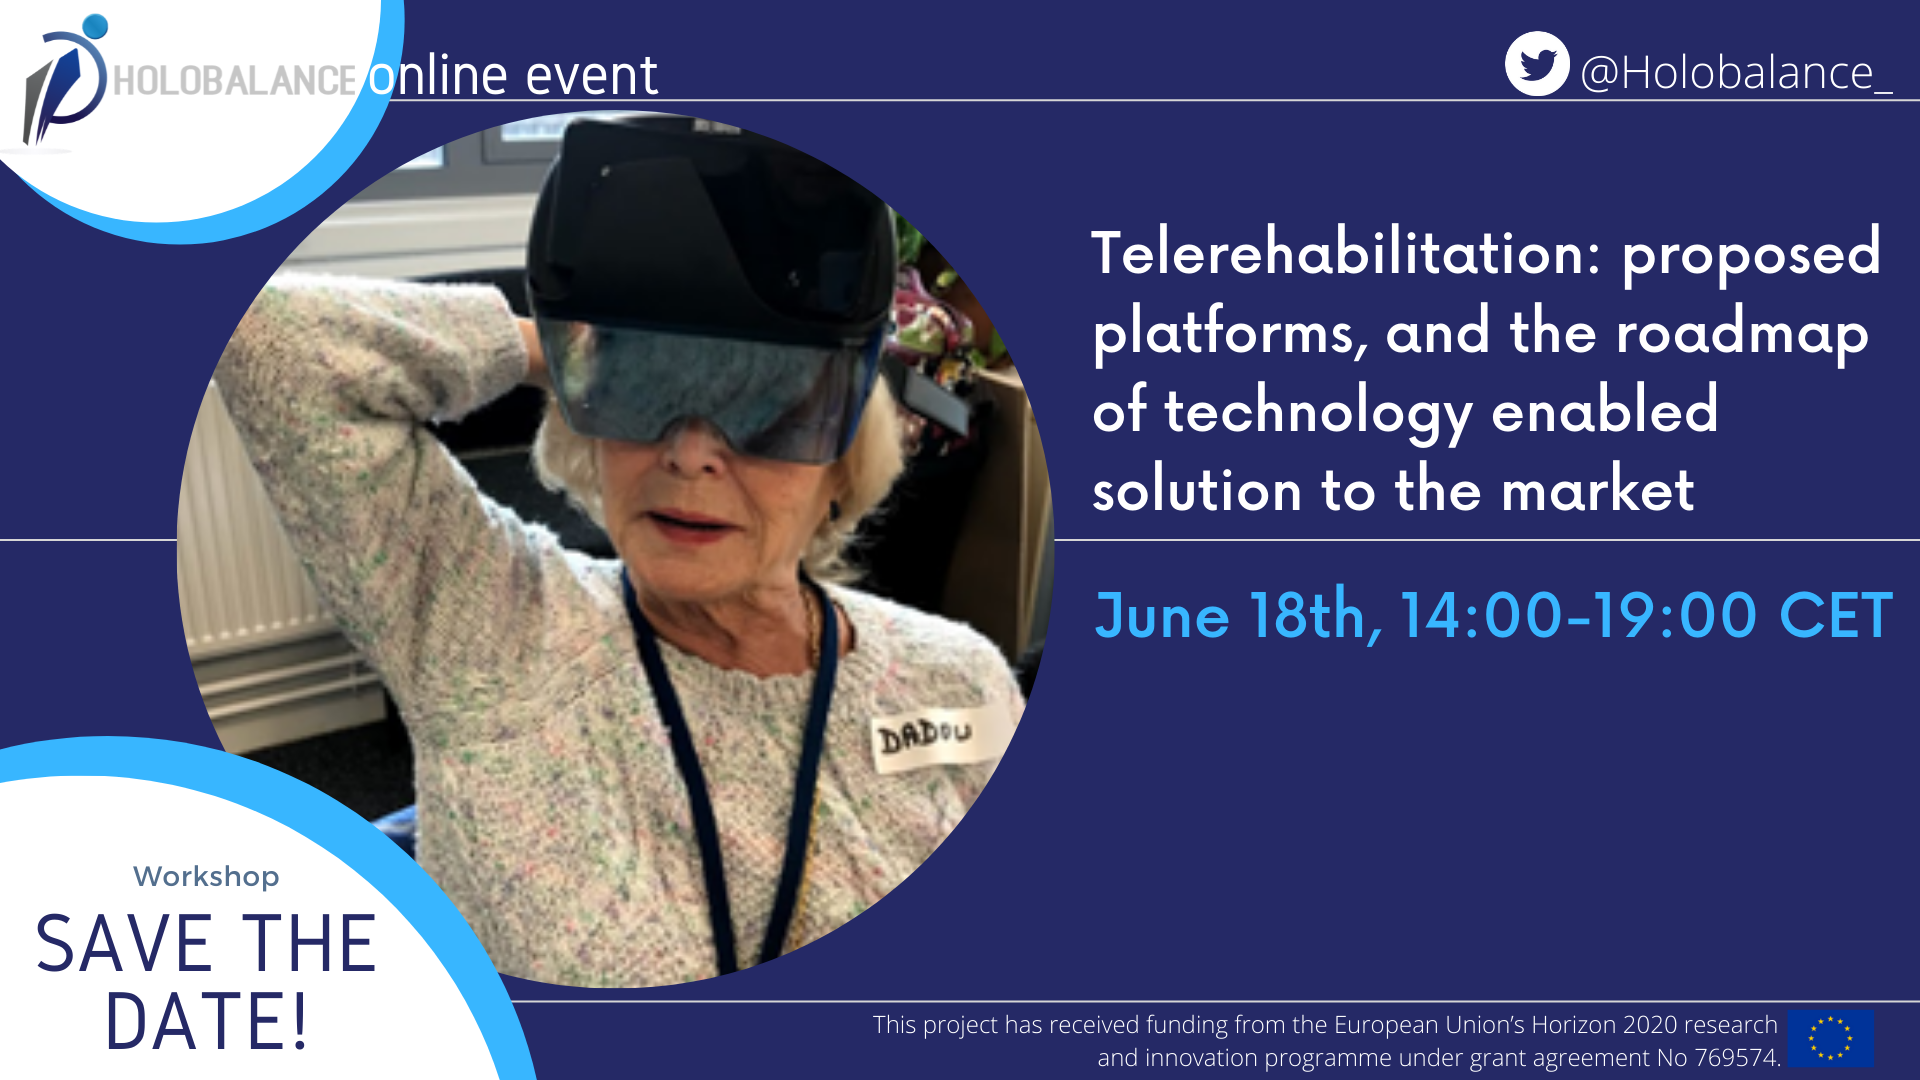 Telerehabilitation: proposed platforms, and the roadmap of technology enabled solution to the market